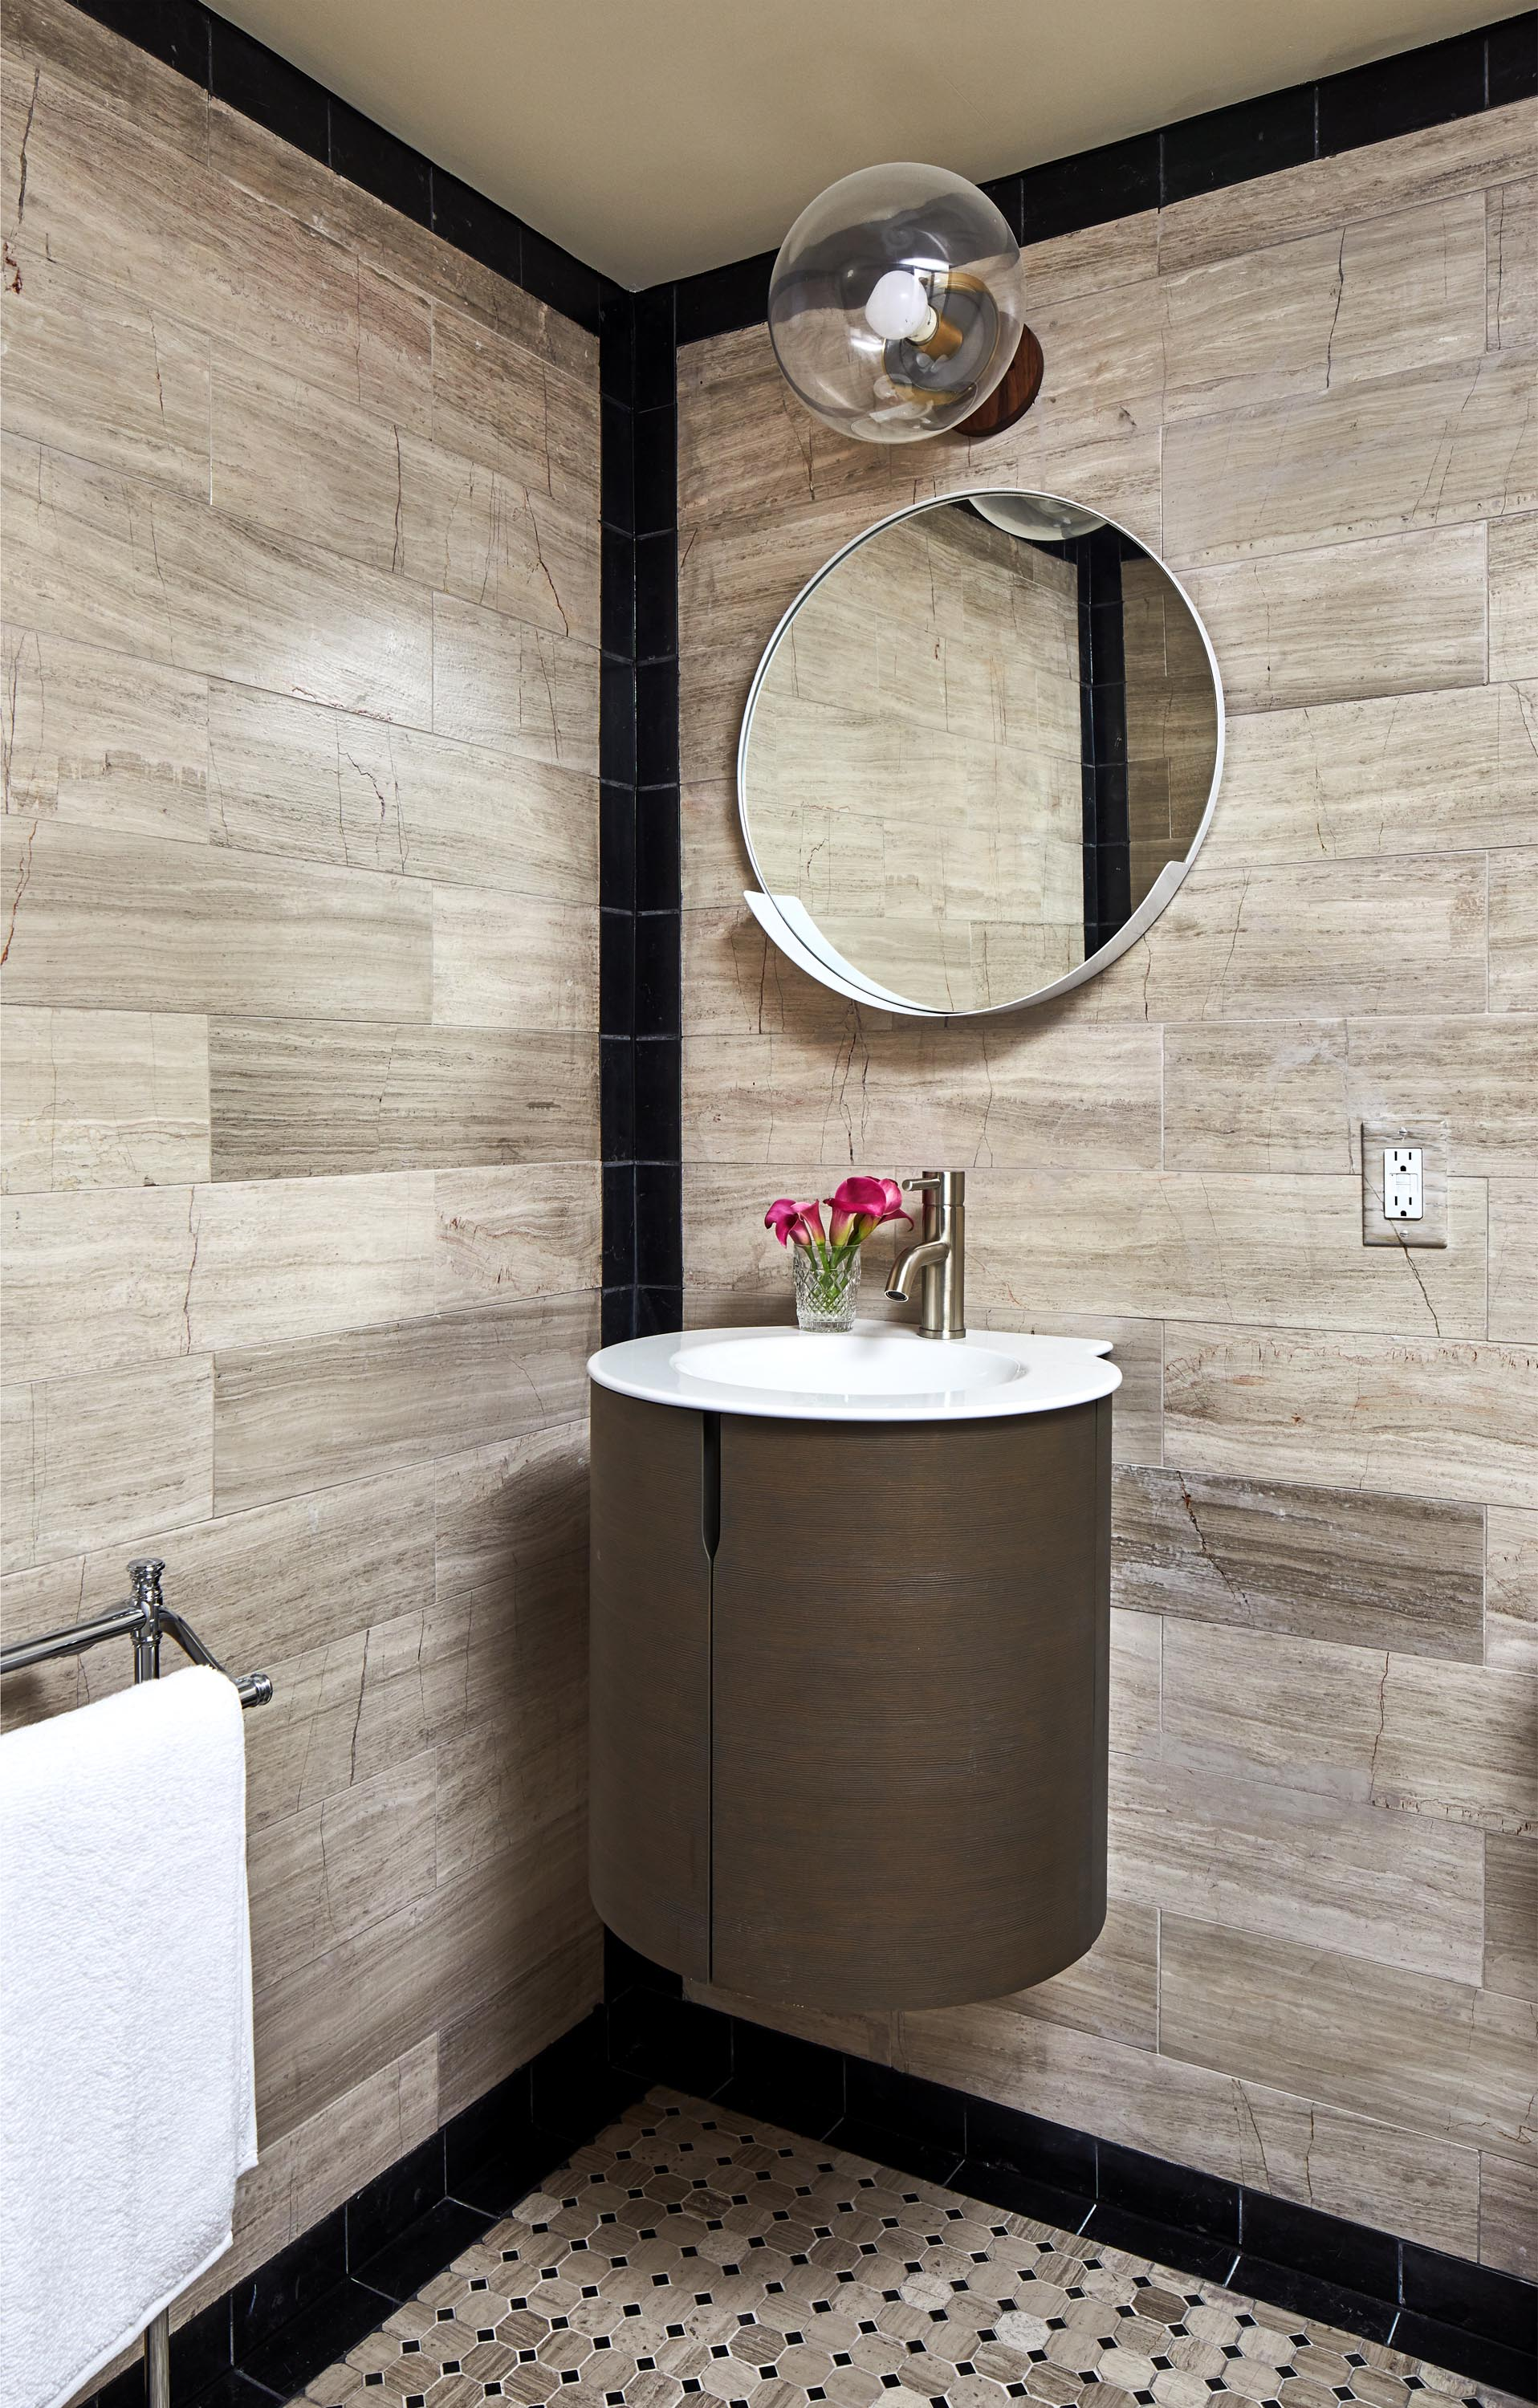 24-Modern-Contemporary-Stone-Bathroom-Bath-Room-Top-Decorator-Best-Interior-Designers-Boston-South-End-Back-Bay-Seaport-Dane-Austin-Design.jpg